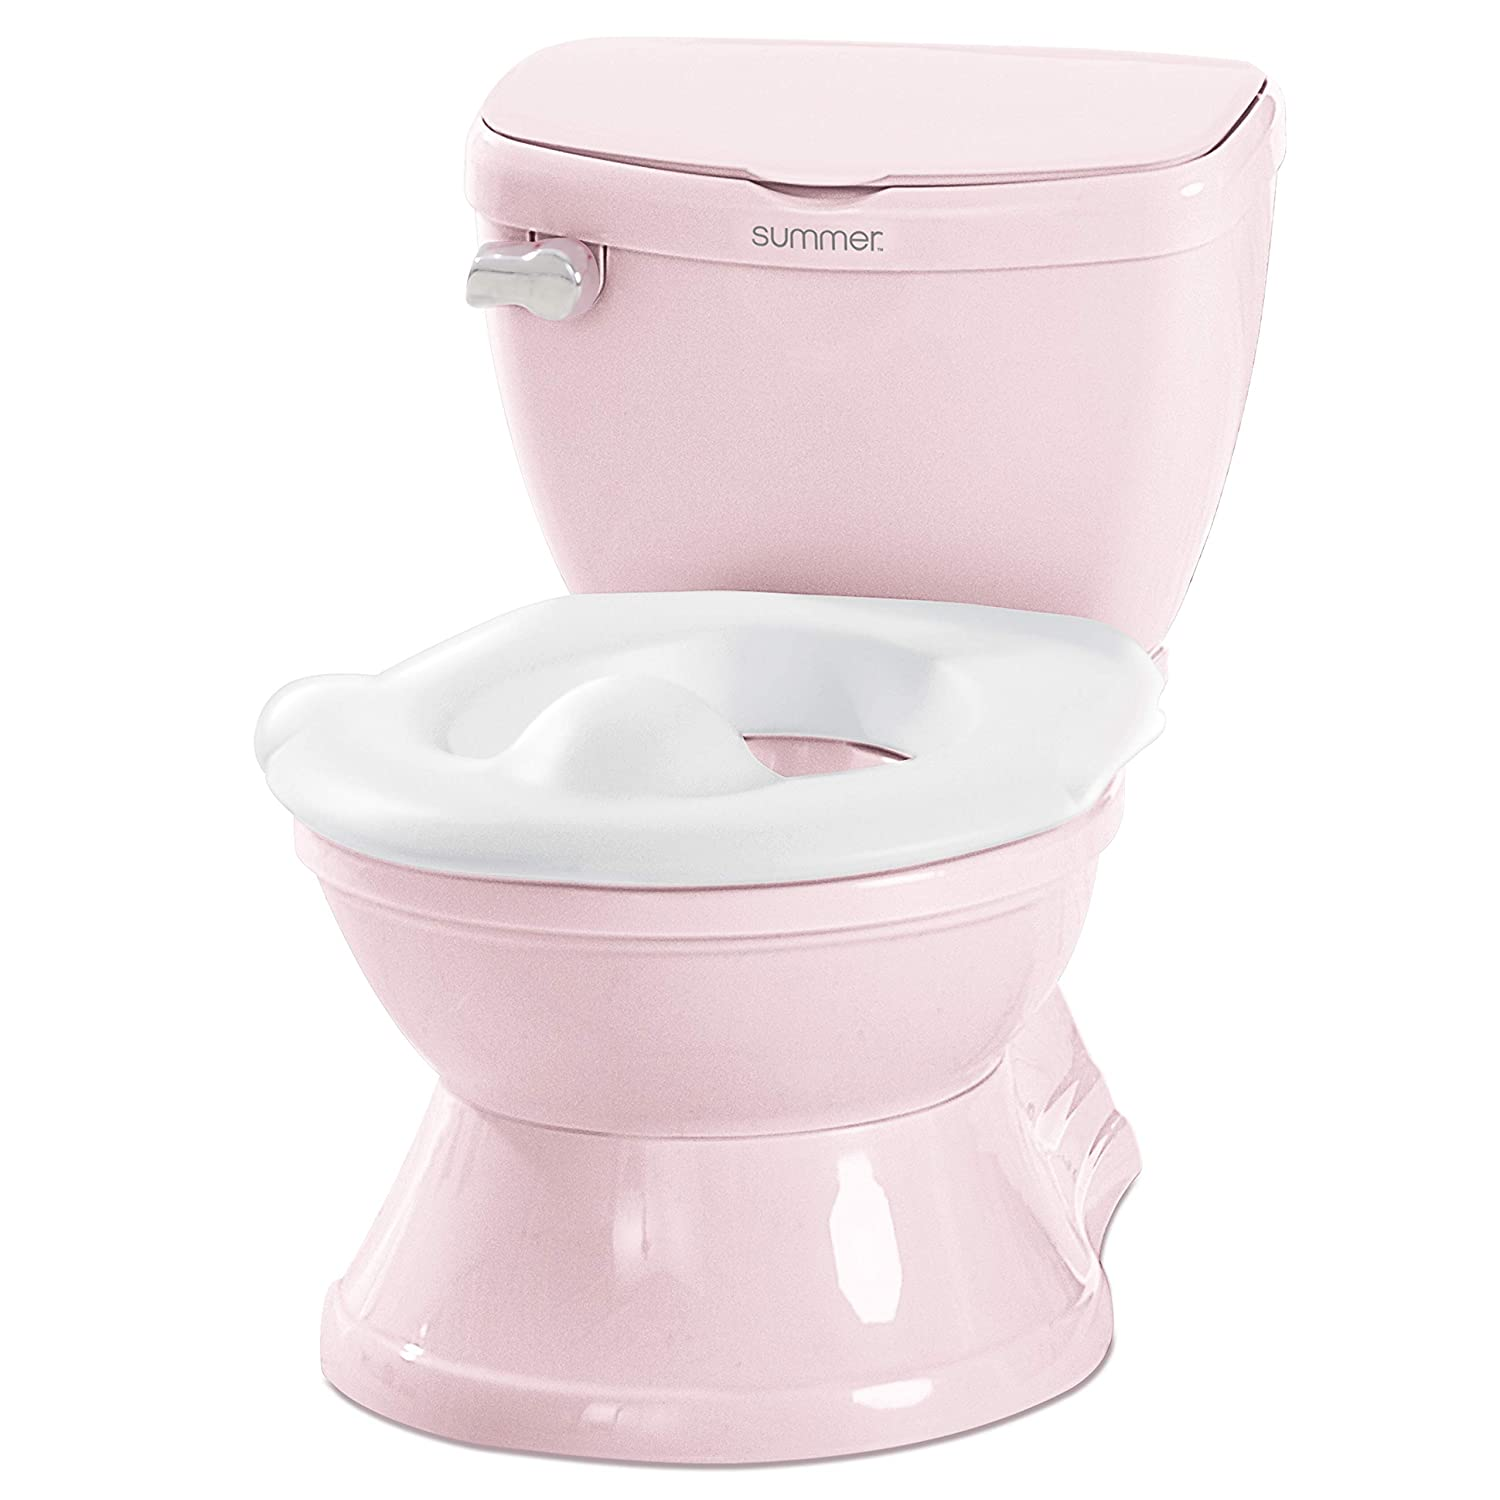 Summer Infant My Size Potty Train & Transition with Removable Potty Topper, Pink, Pink w/White Topper